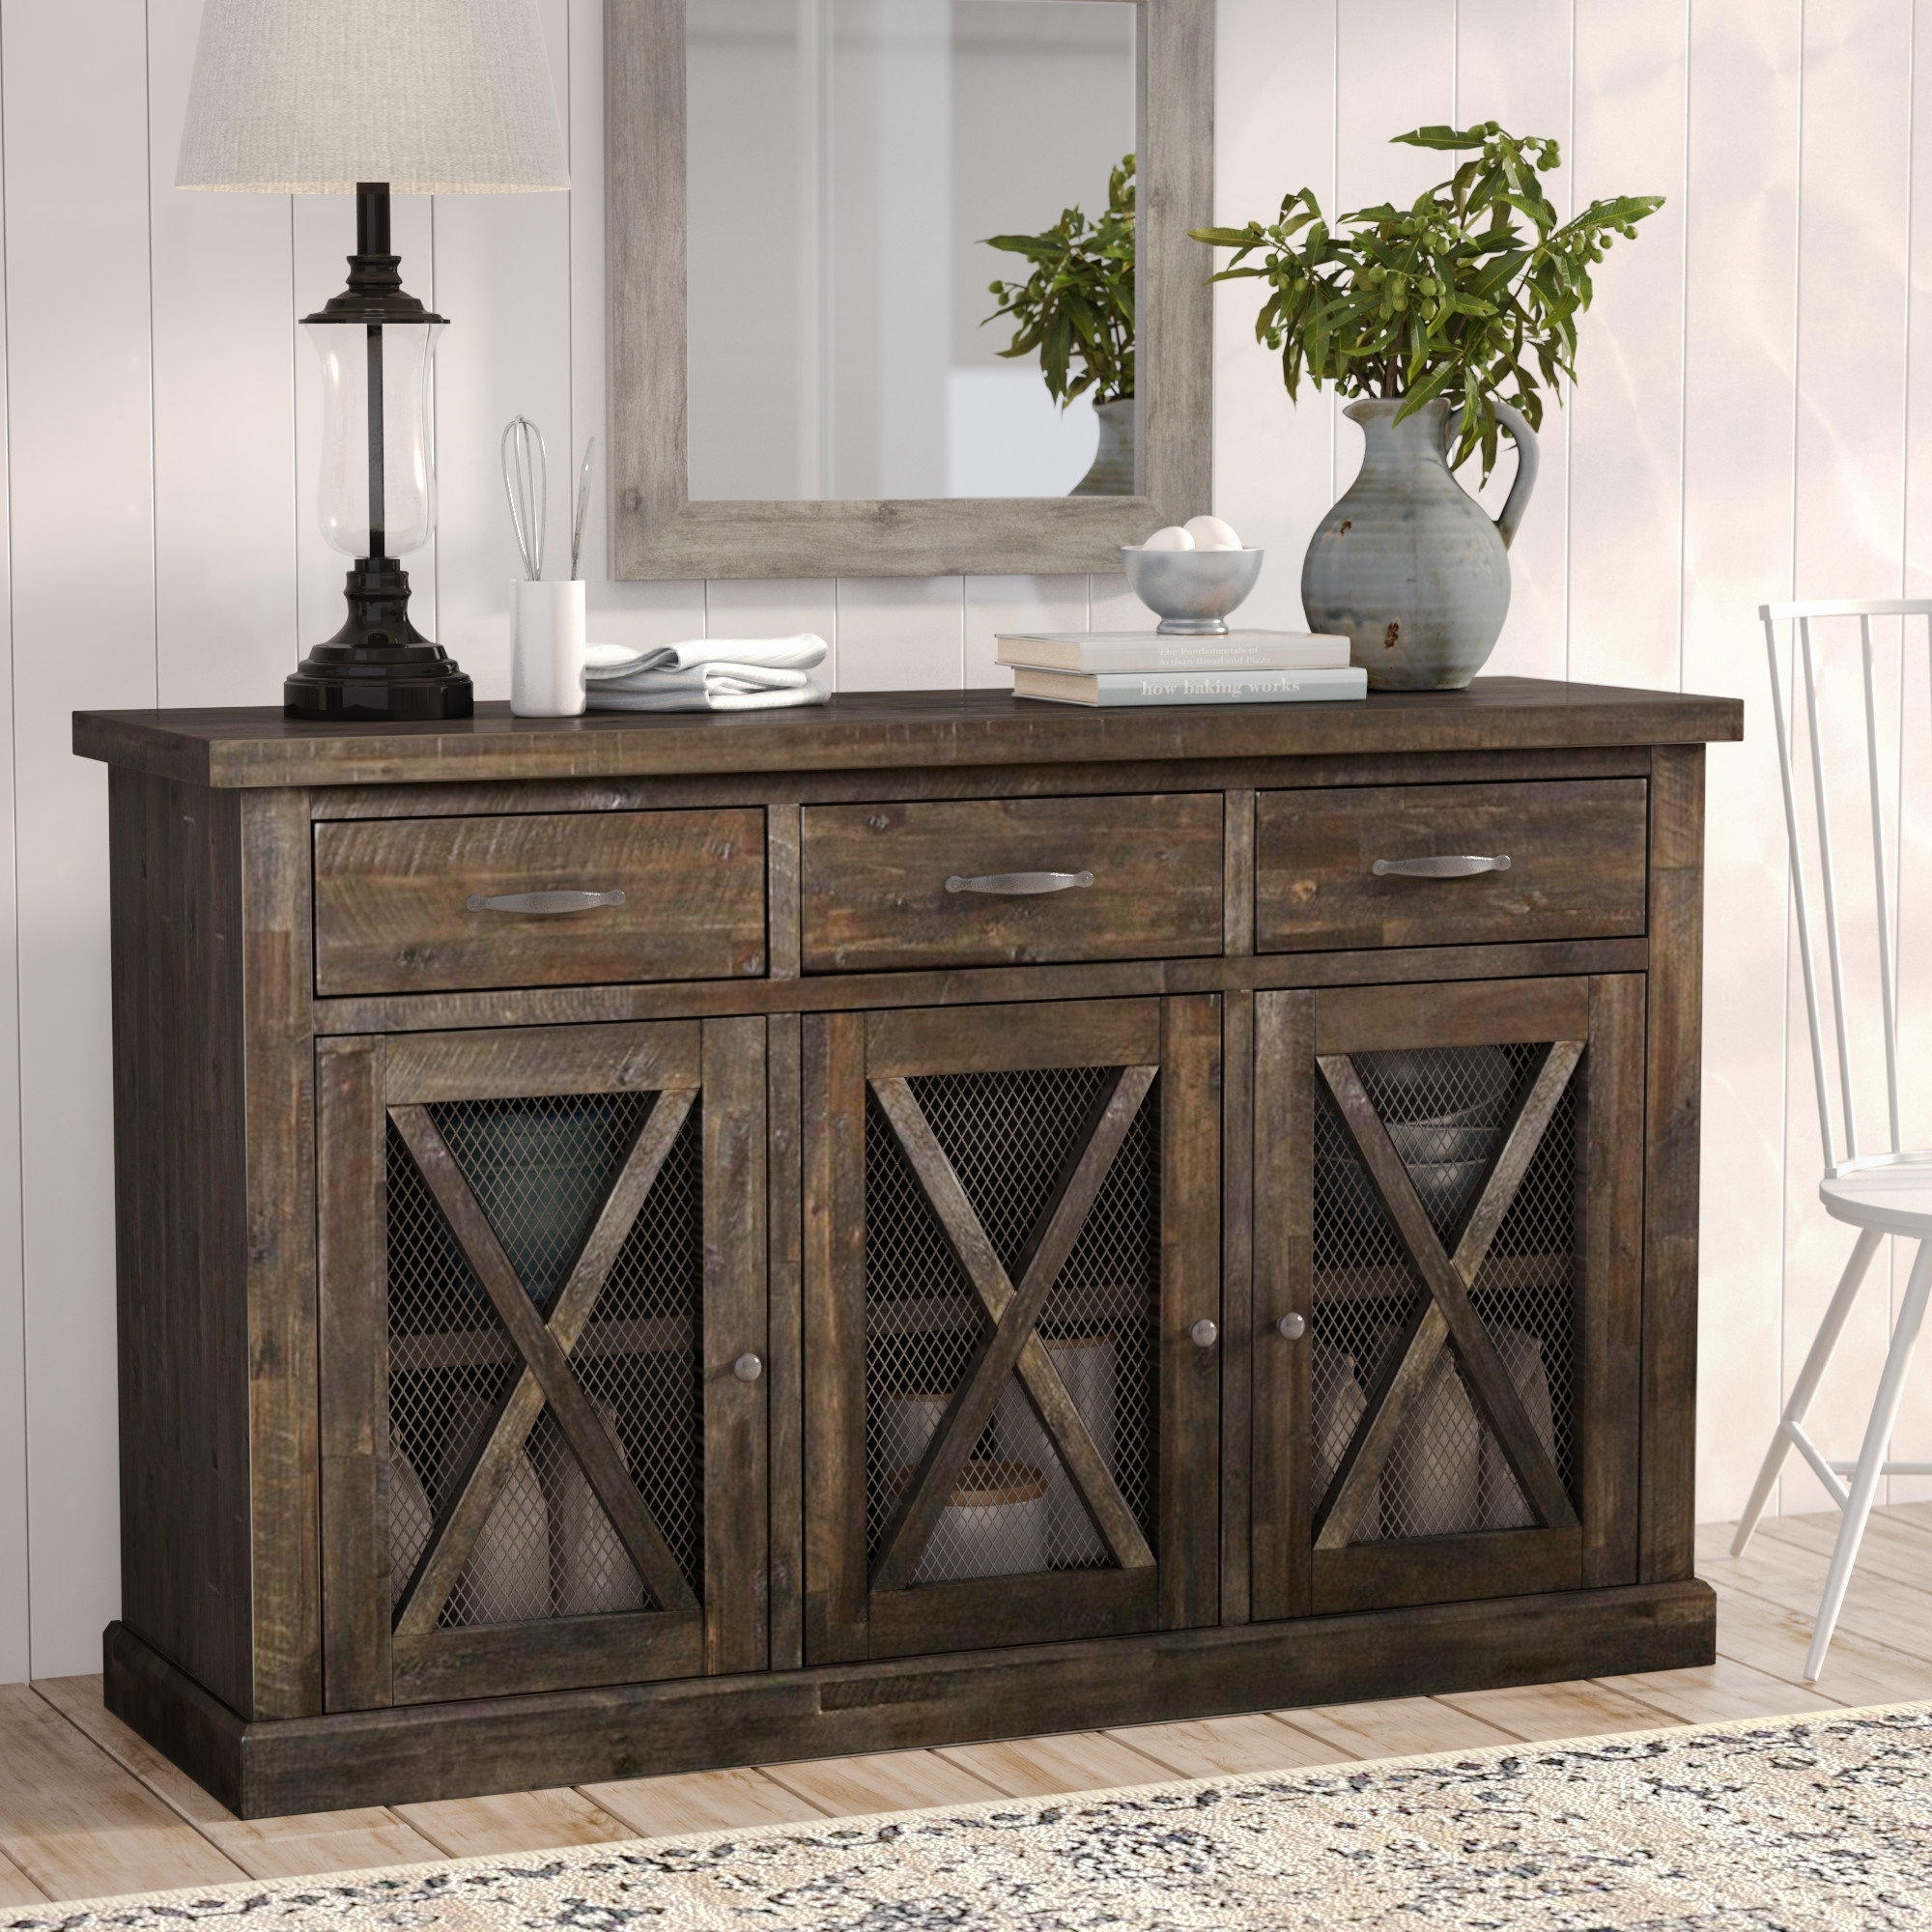 Colborne Sideboard & Reviews | Joss & Main inside Acacia Wood 4-Door Sideboards (Image 6 of 30)